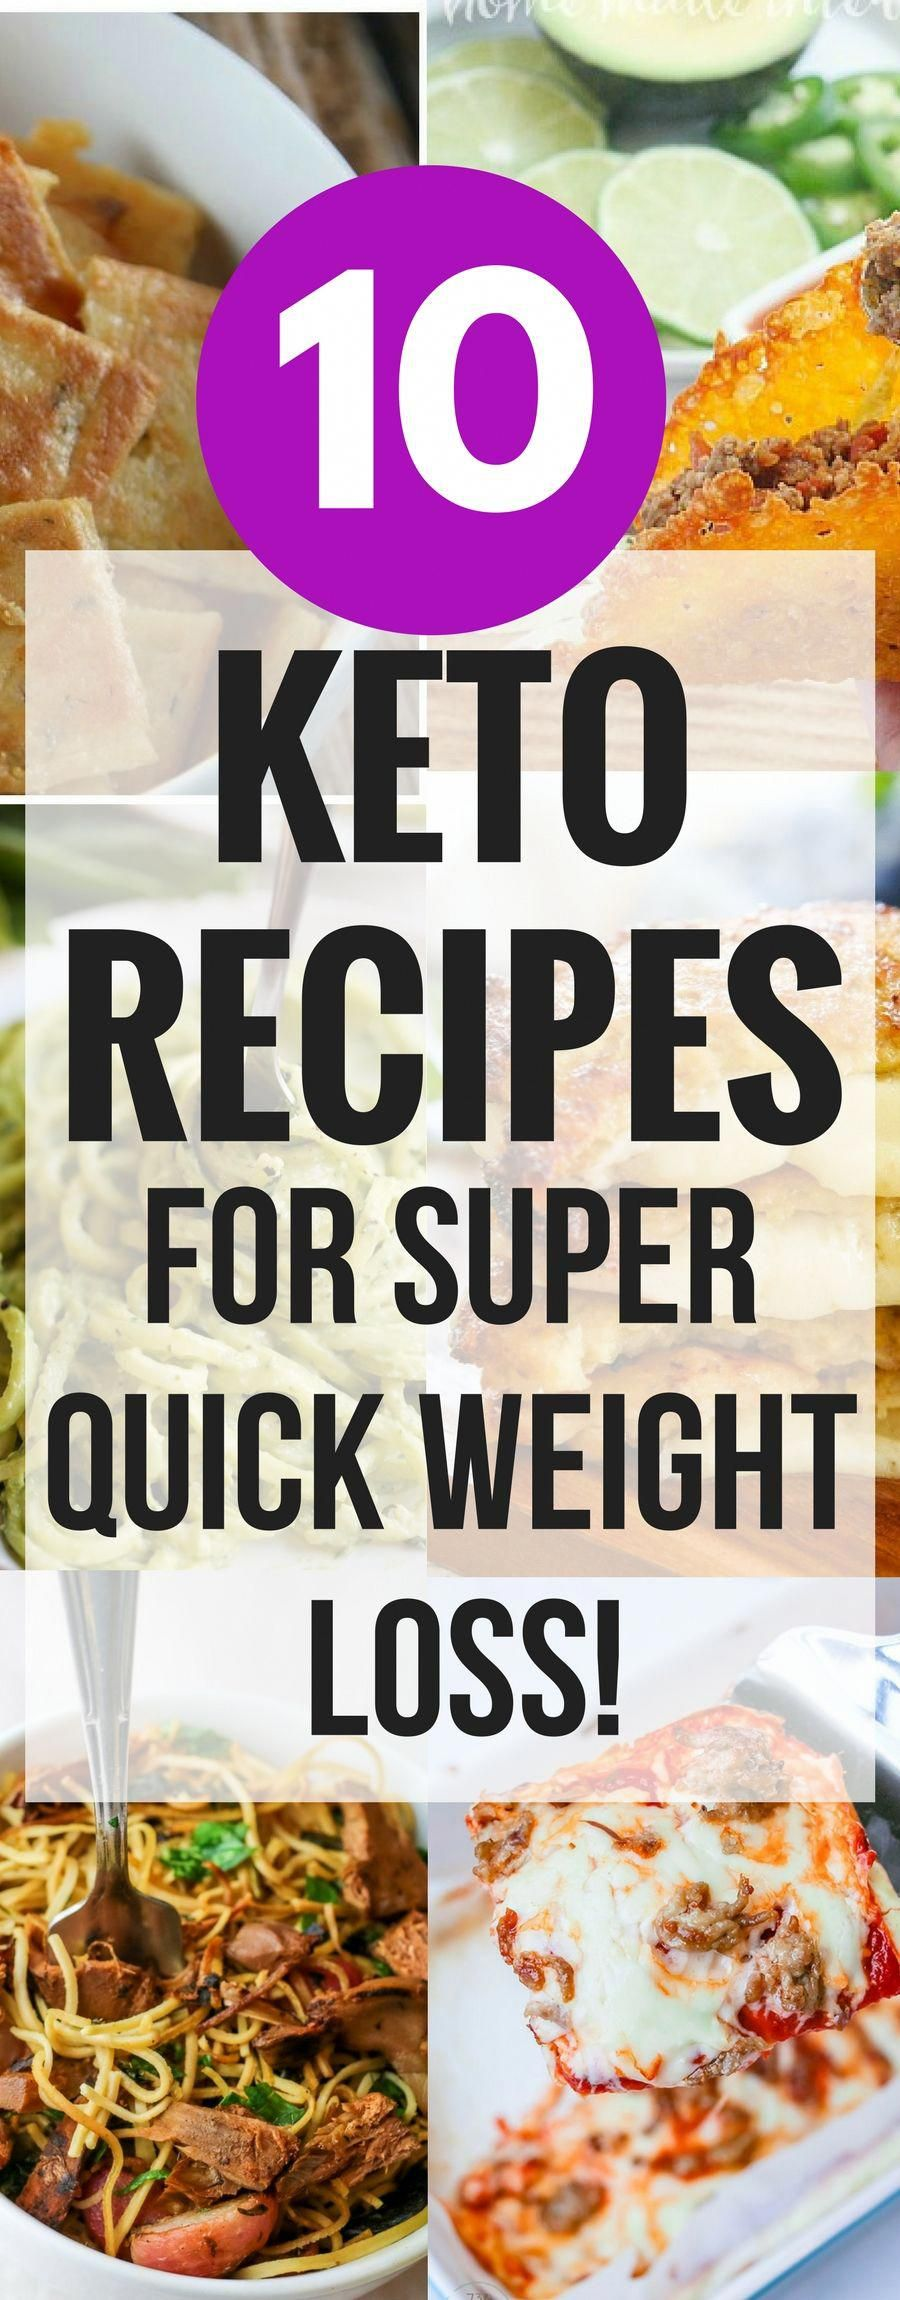 Low Carb Recipes Australia KETOGENICDIET Ketosis diet